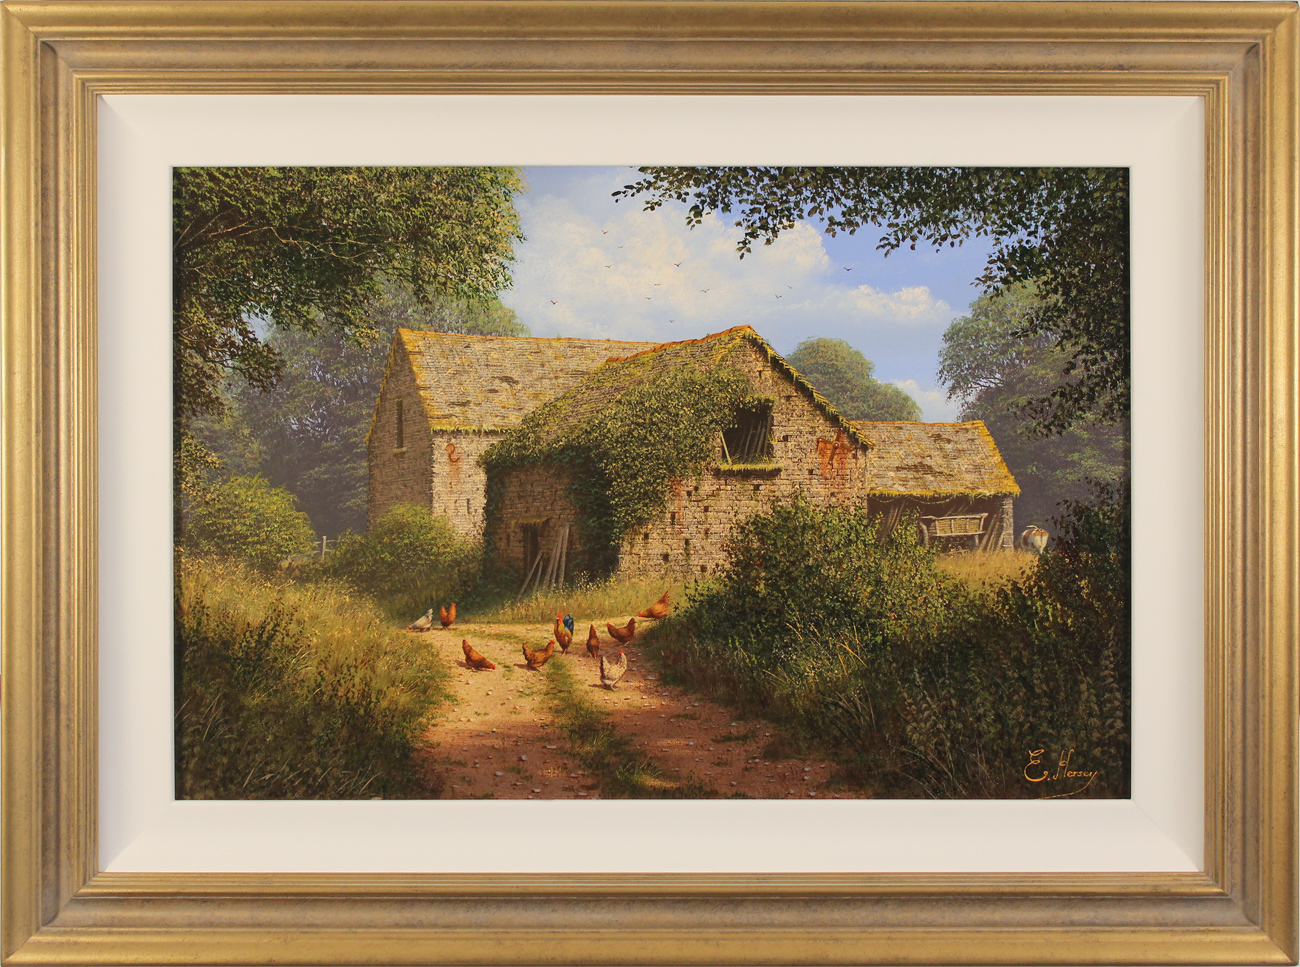 Edward Hersey, Original oil painting on canvas, Cotswolds Farm. Click to enlarge